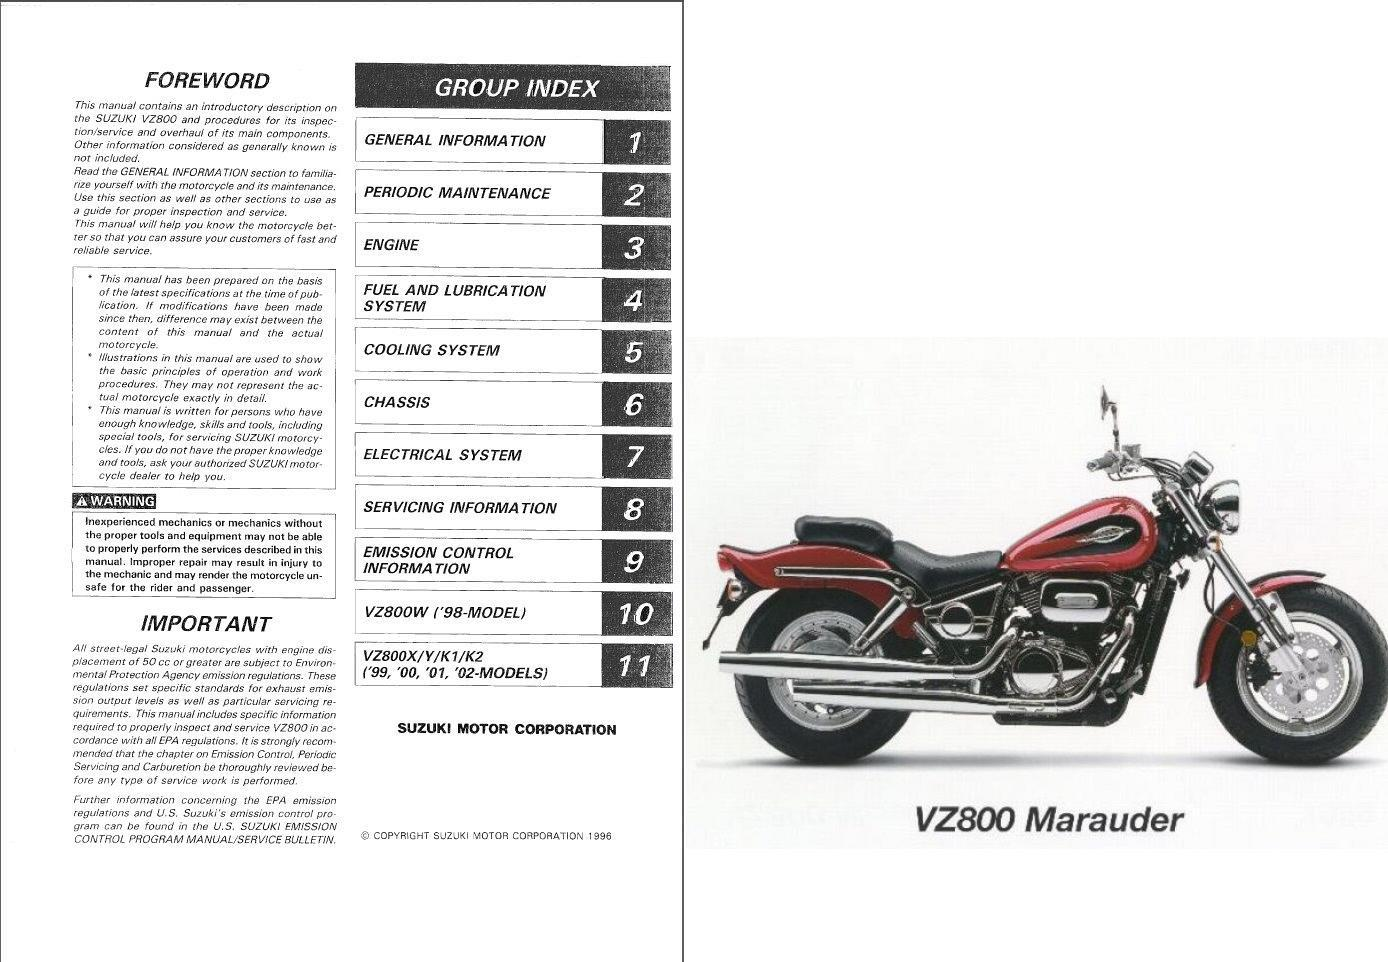 1997-2003 Suzuki VZ800 Marauder Service Repair & Parts